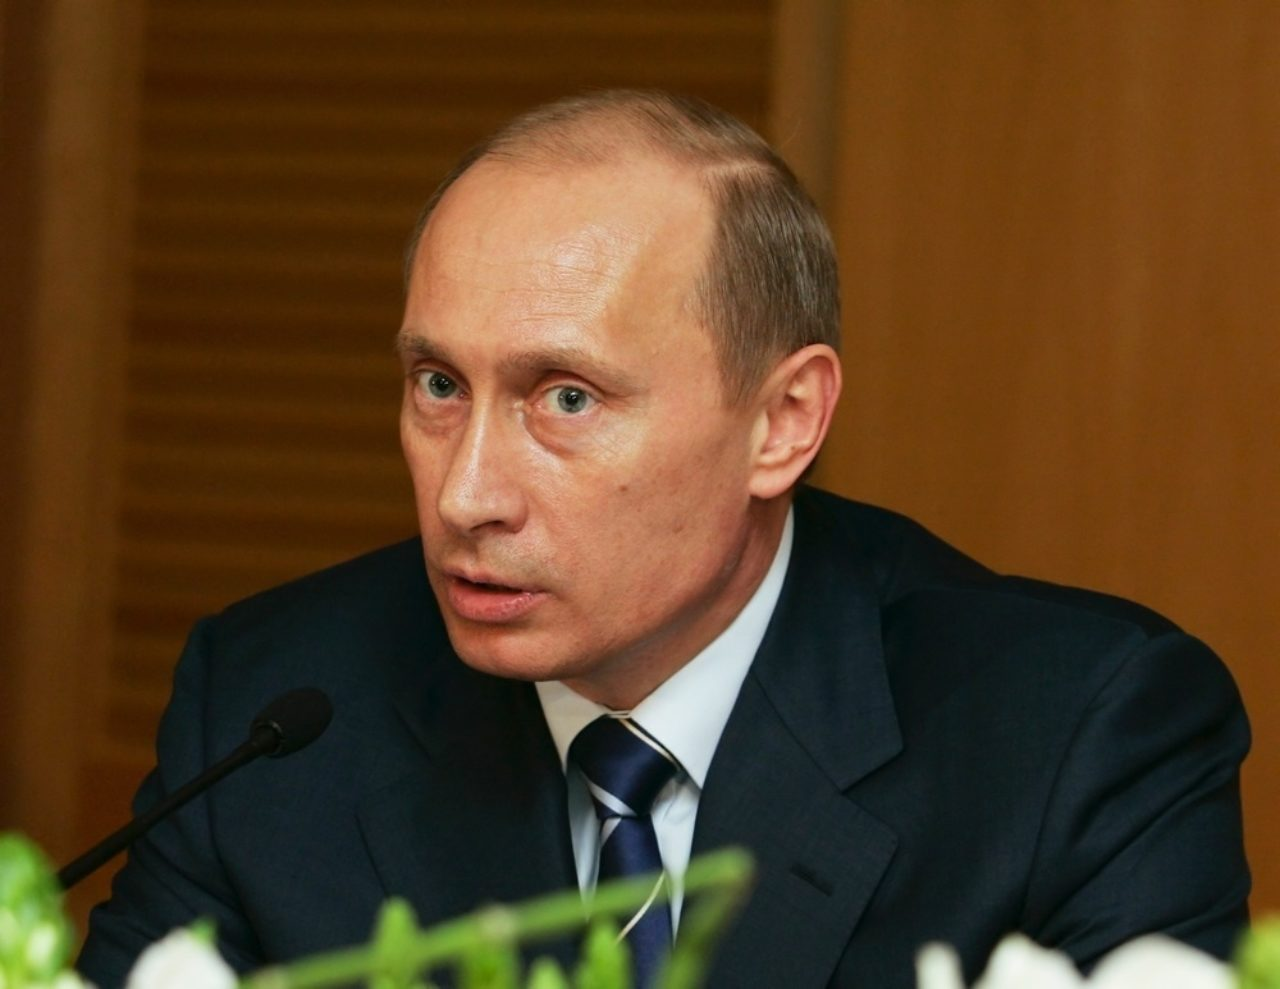 Putin The Richest Man On Earth The Bureau Of Investigative Journalism